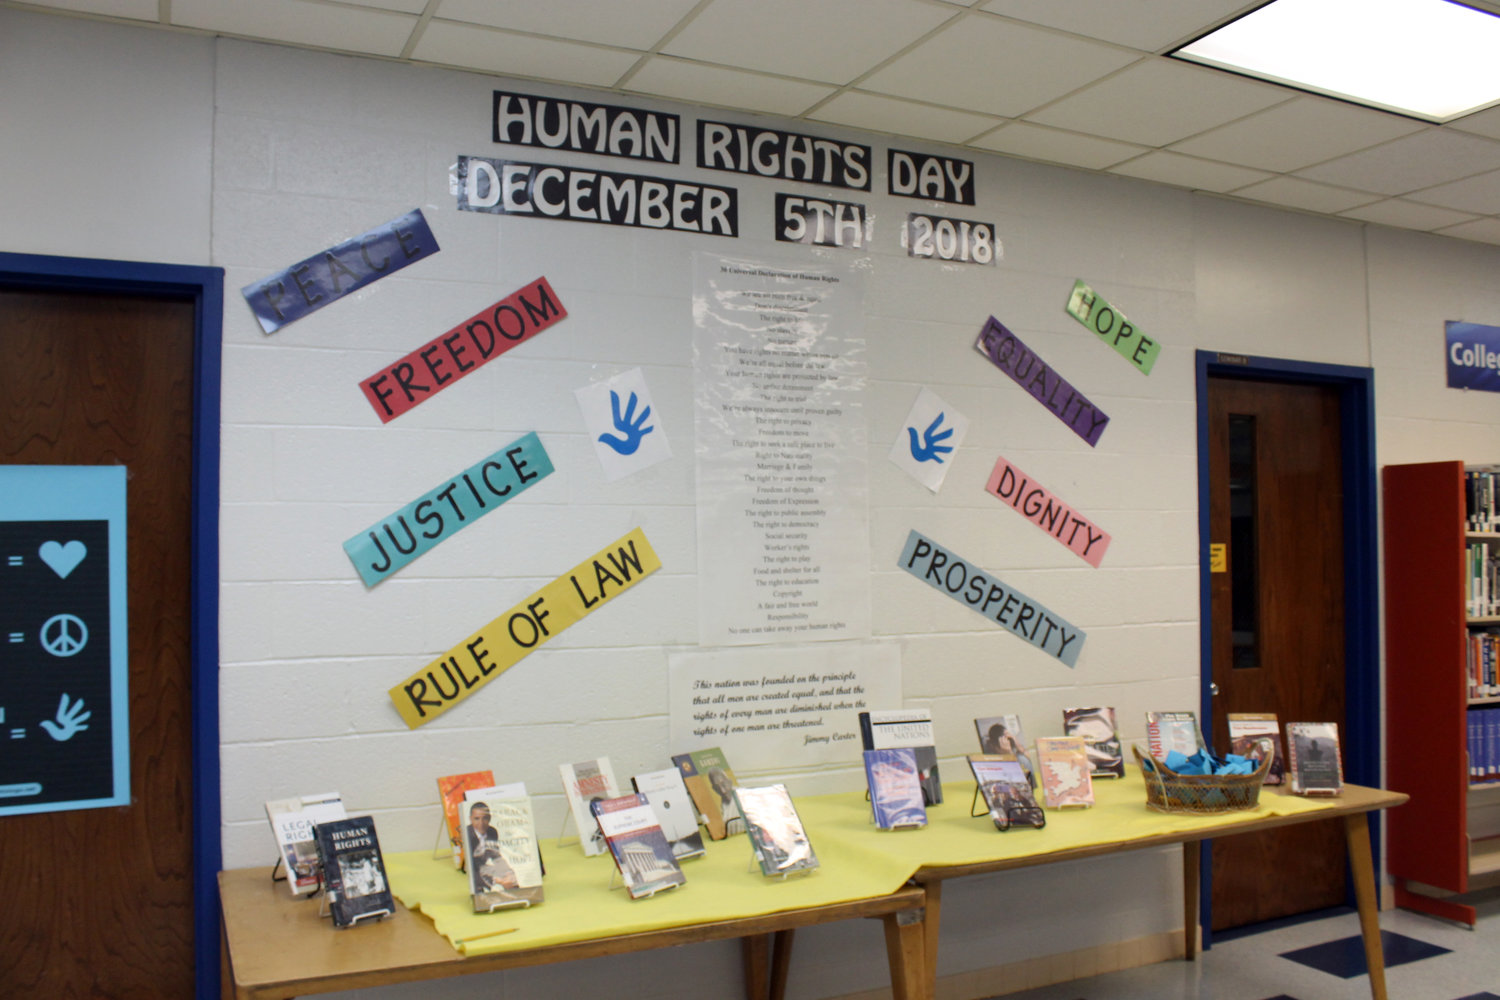 Human Rights Day was held December 5.